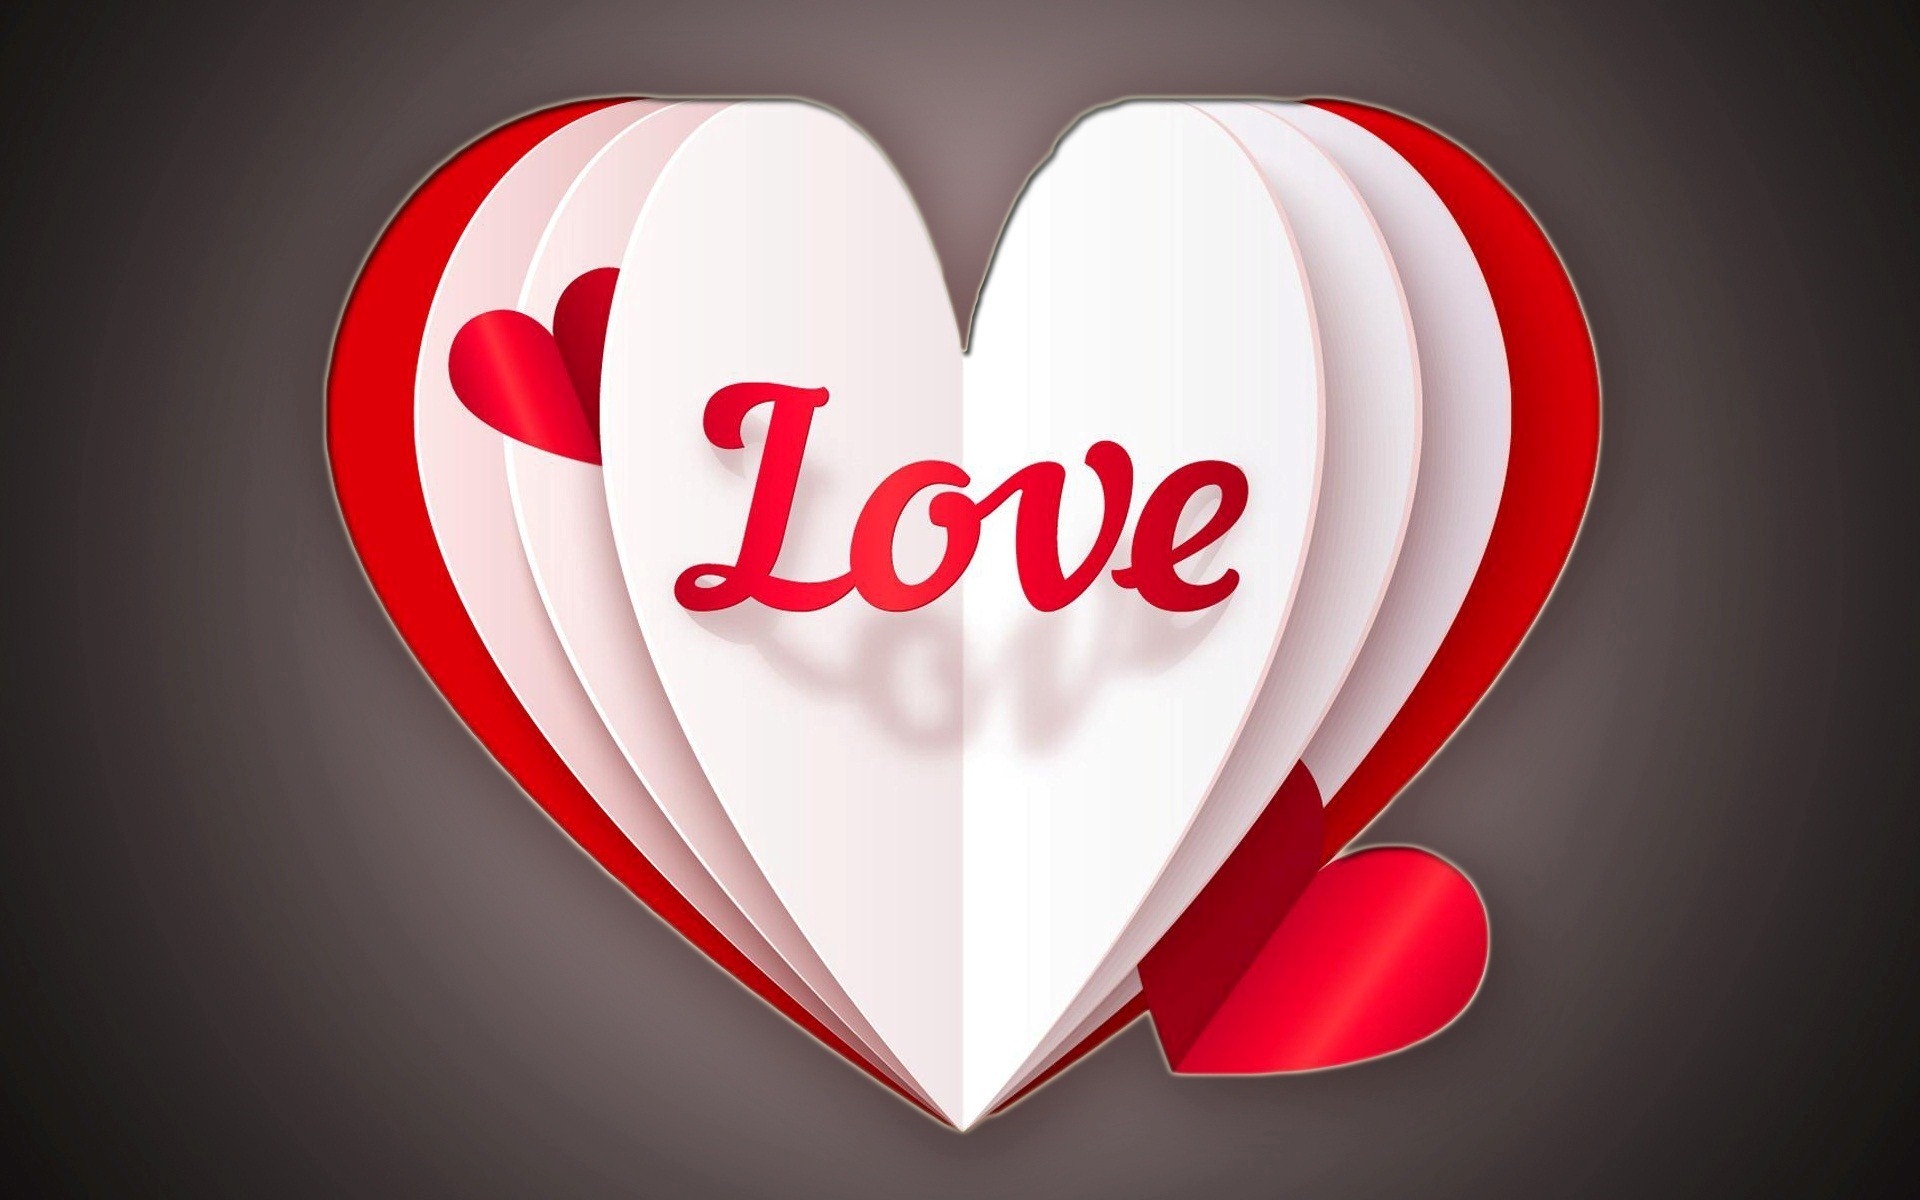 2880x1800 2880x1800 Wallpapers For Love Hearts Wallpapers Hd